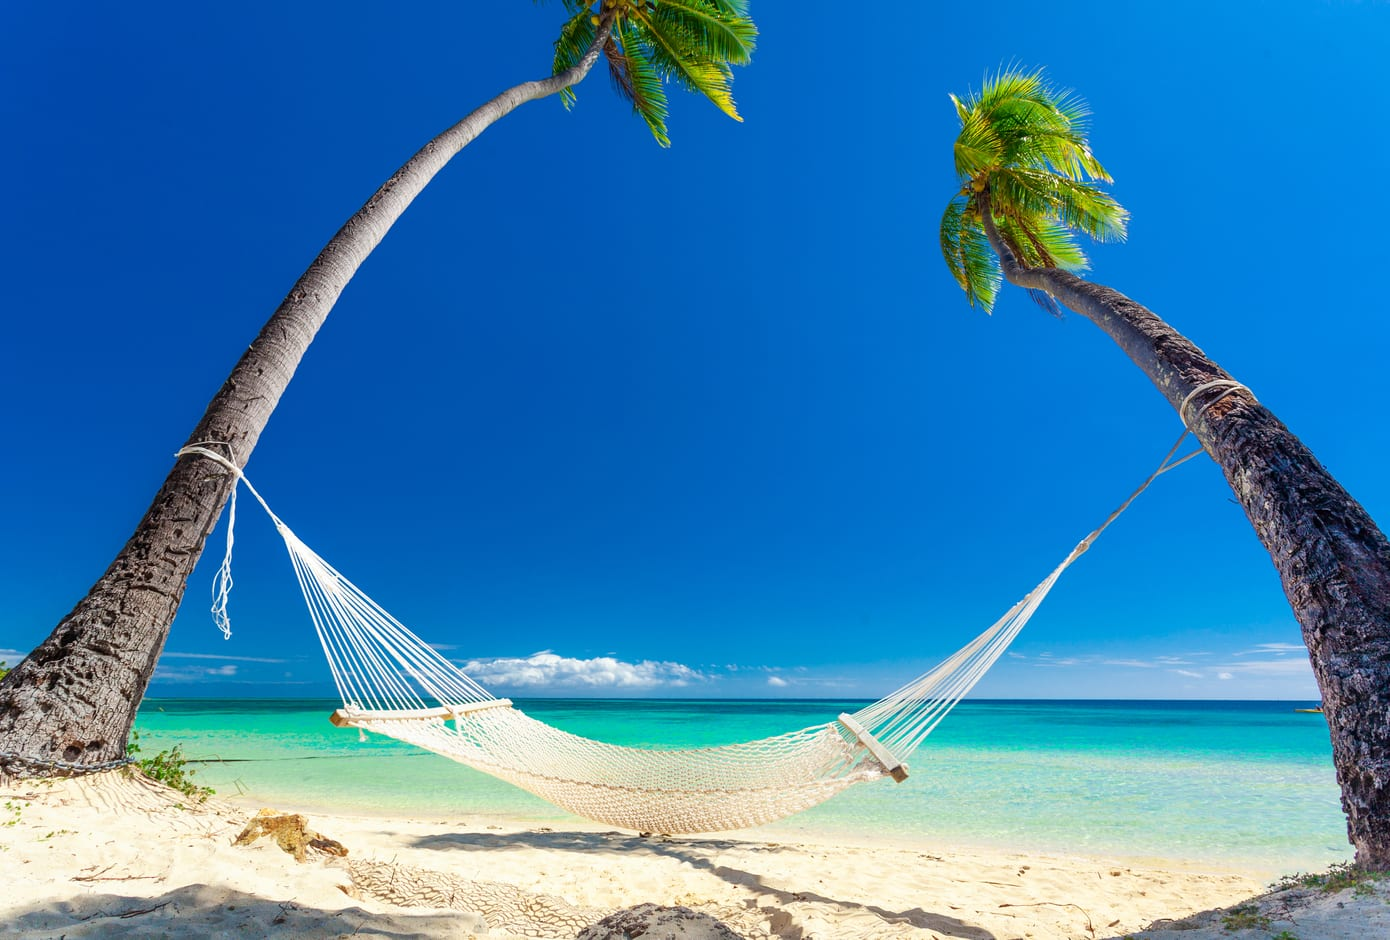 Empty hammock in the shade of palm trees on Fiji Islands